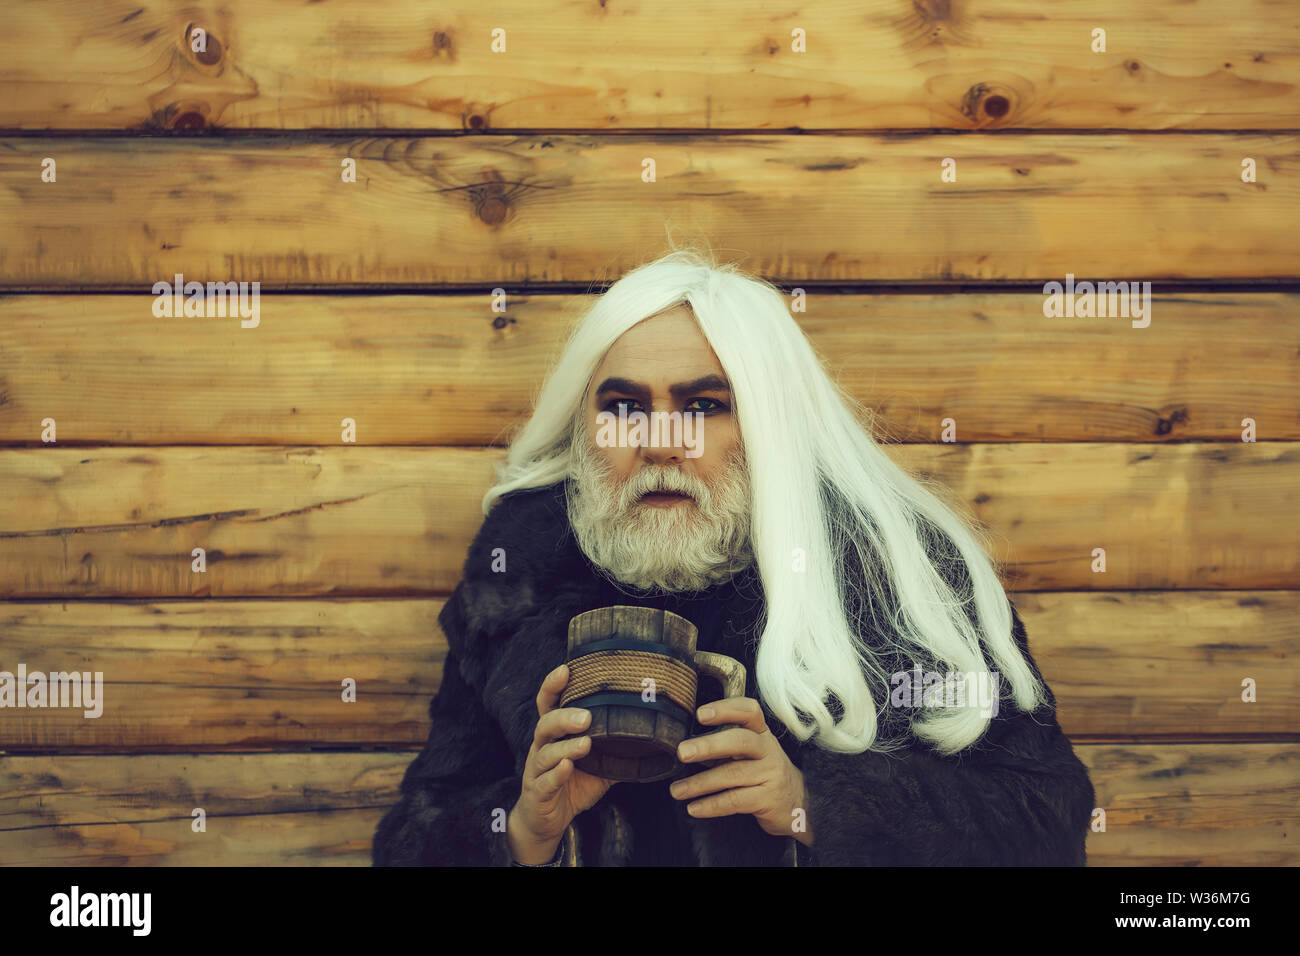 Old Man With Long Grey Hair High Resolution Stock Photography And Images Alamy